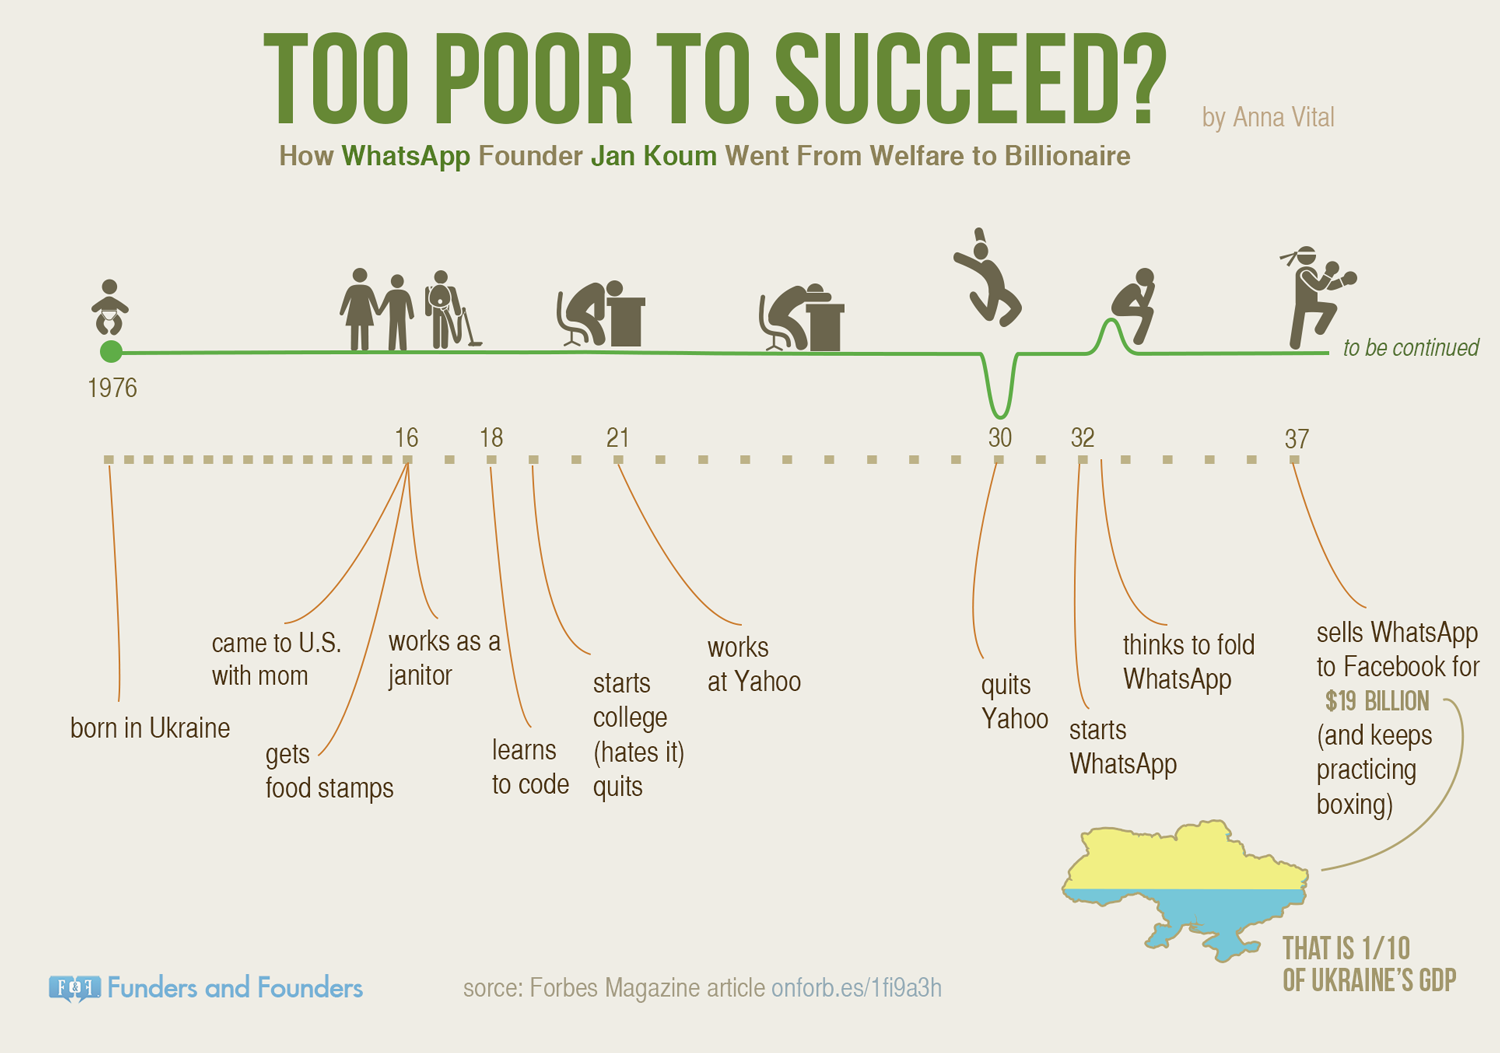 http://sc.cnbcfm.com/applications/cnbc.com/resources/files/2017/04/24/too-poor-to-succeed-whatsapp-jan-koum-infographic.png